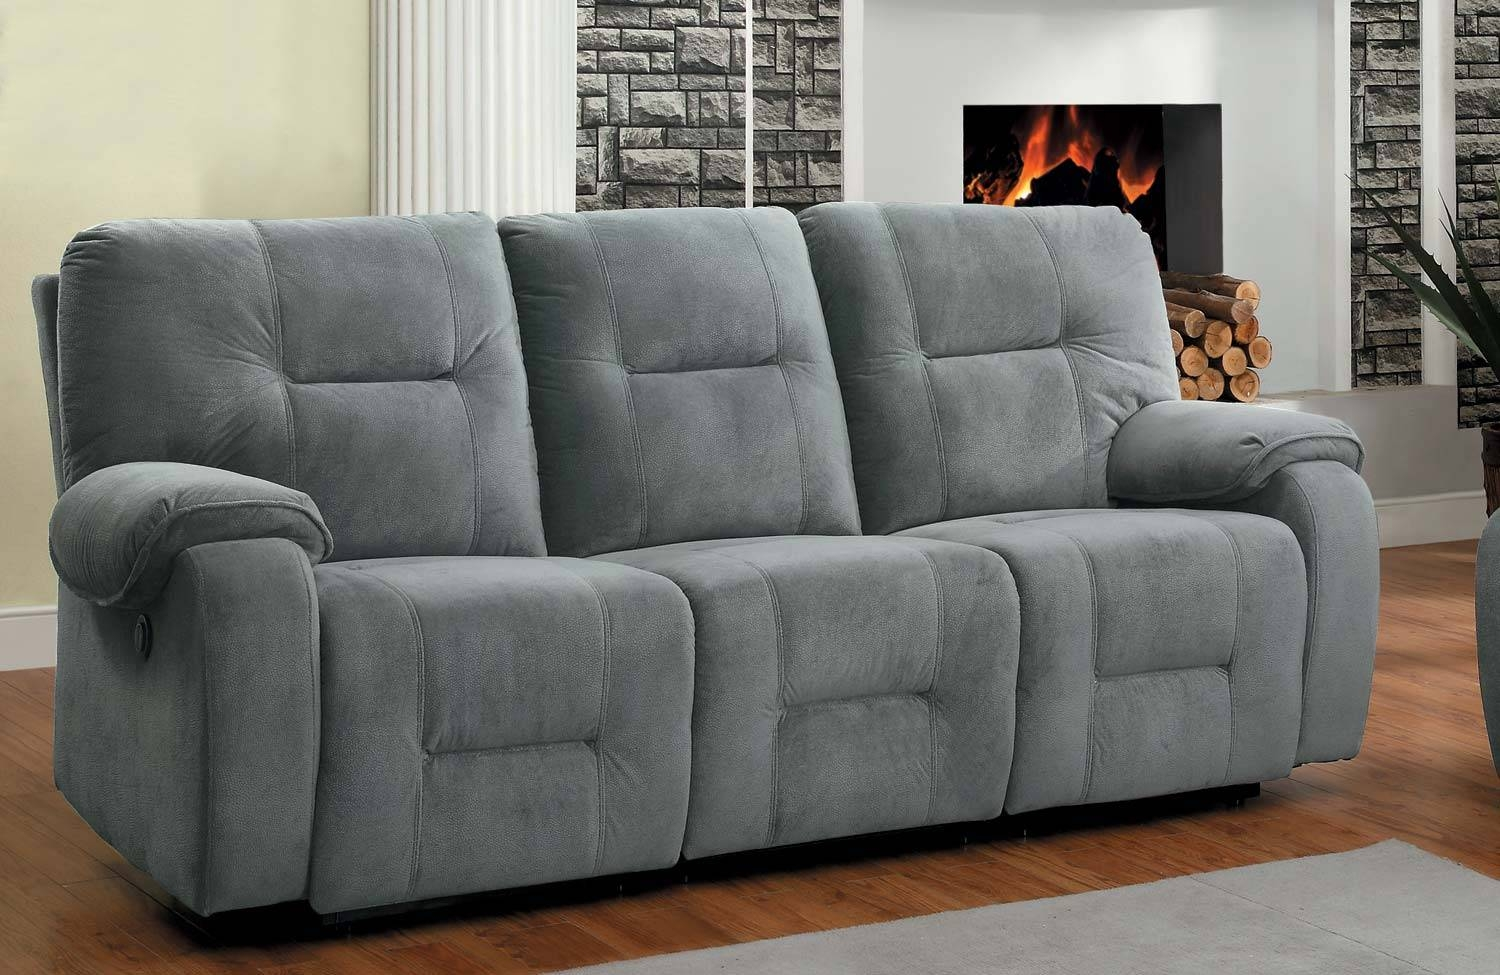 Homelegance Bensonhurst Power Double Reclining Sofa - Blue Grey regarding Blue Grey Sofas (Image 9 of 15)